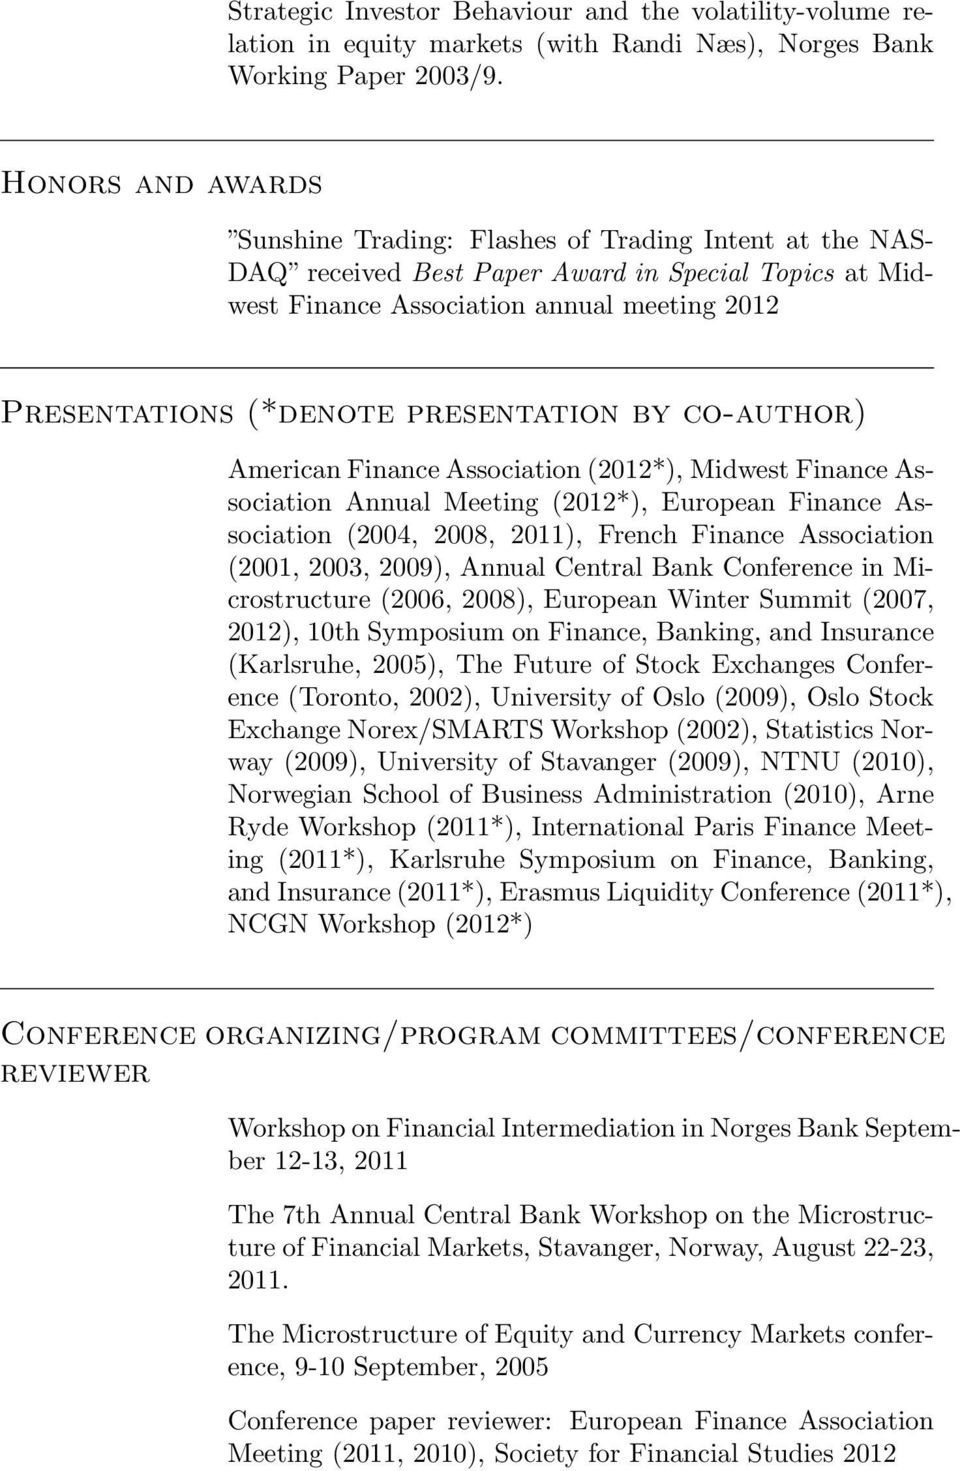 presentation by co-author) American Finance Association (2012*), Midwest Finance Association Annual Meeting (2012*), European Finance Association (2004, 2008, 2011), French Finance Association (2001,